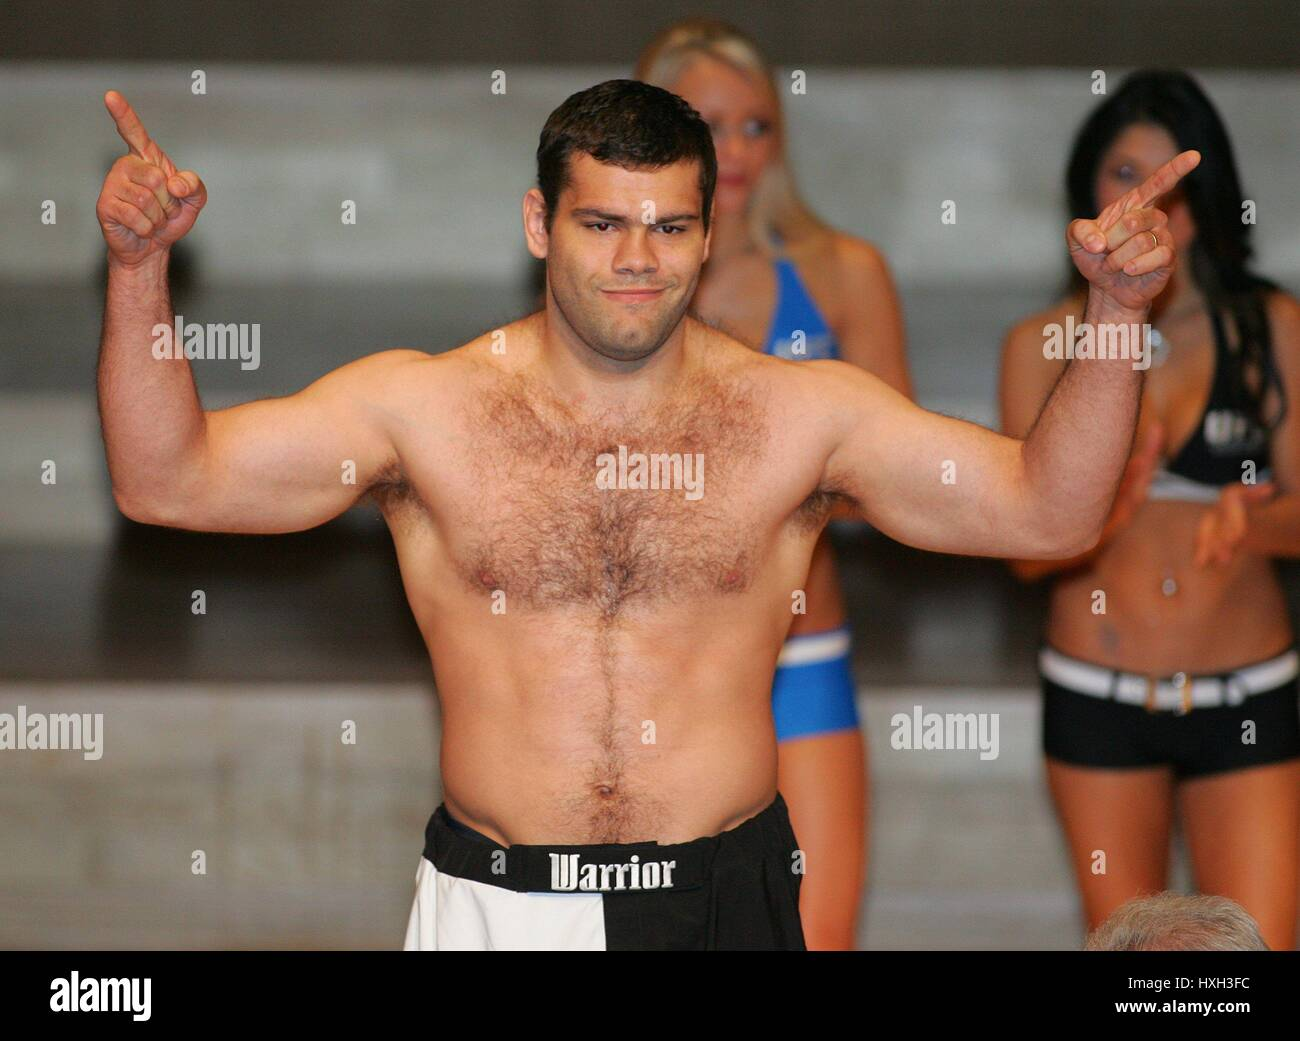 GABRIEL GONZAGA UFC HEAVY WEIGHT FIGHTER MANCHESTER  ENGLAND 20 April 2007 - Stock Image